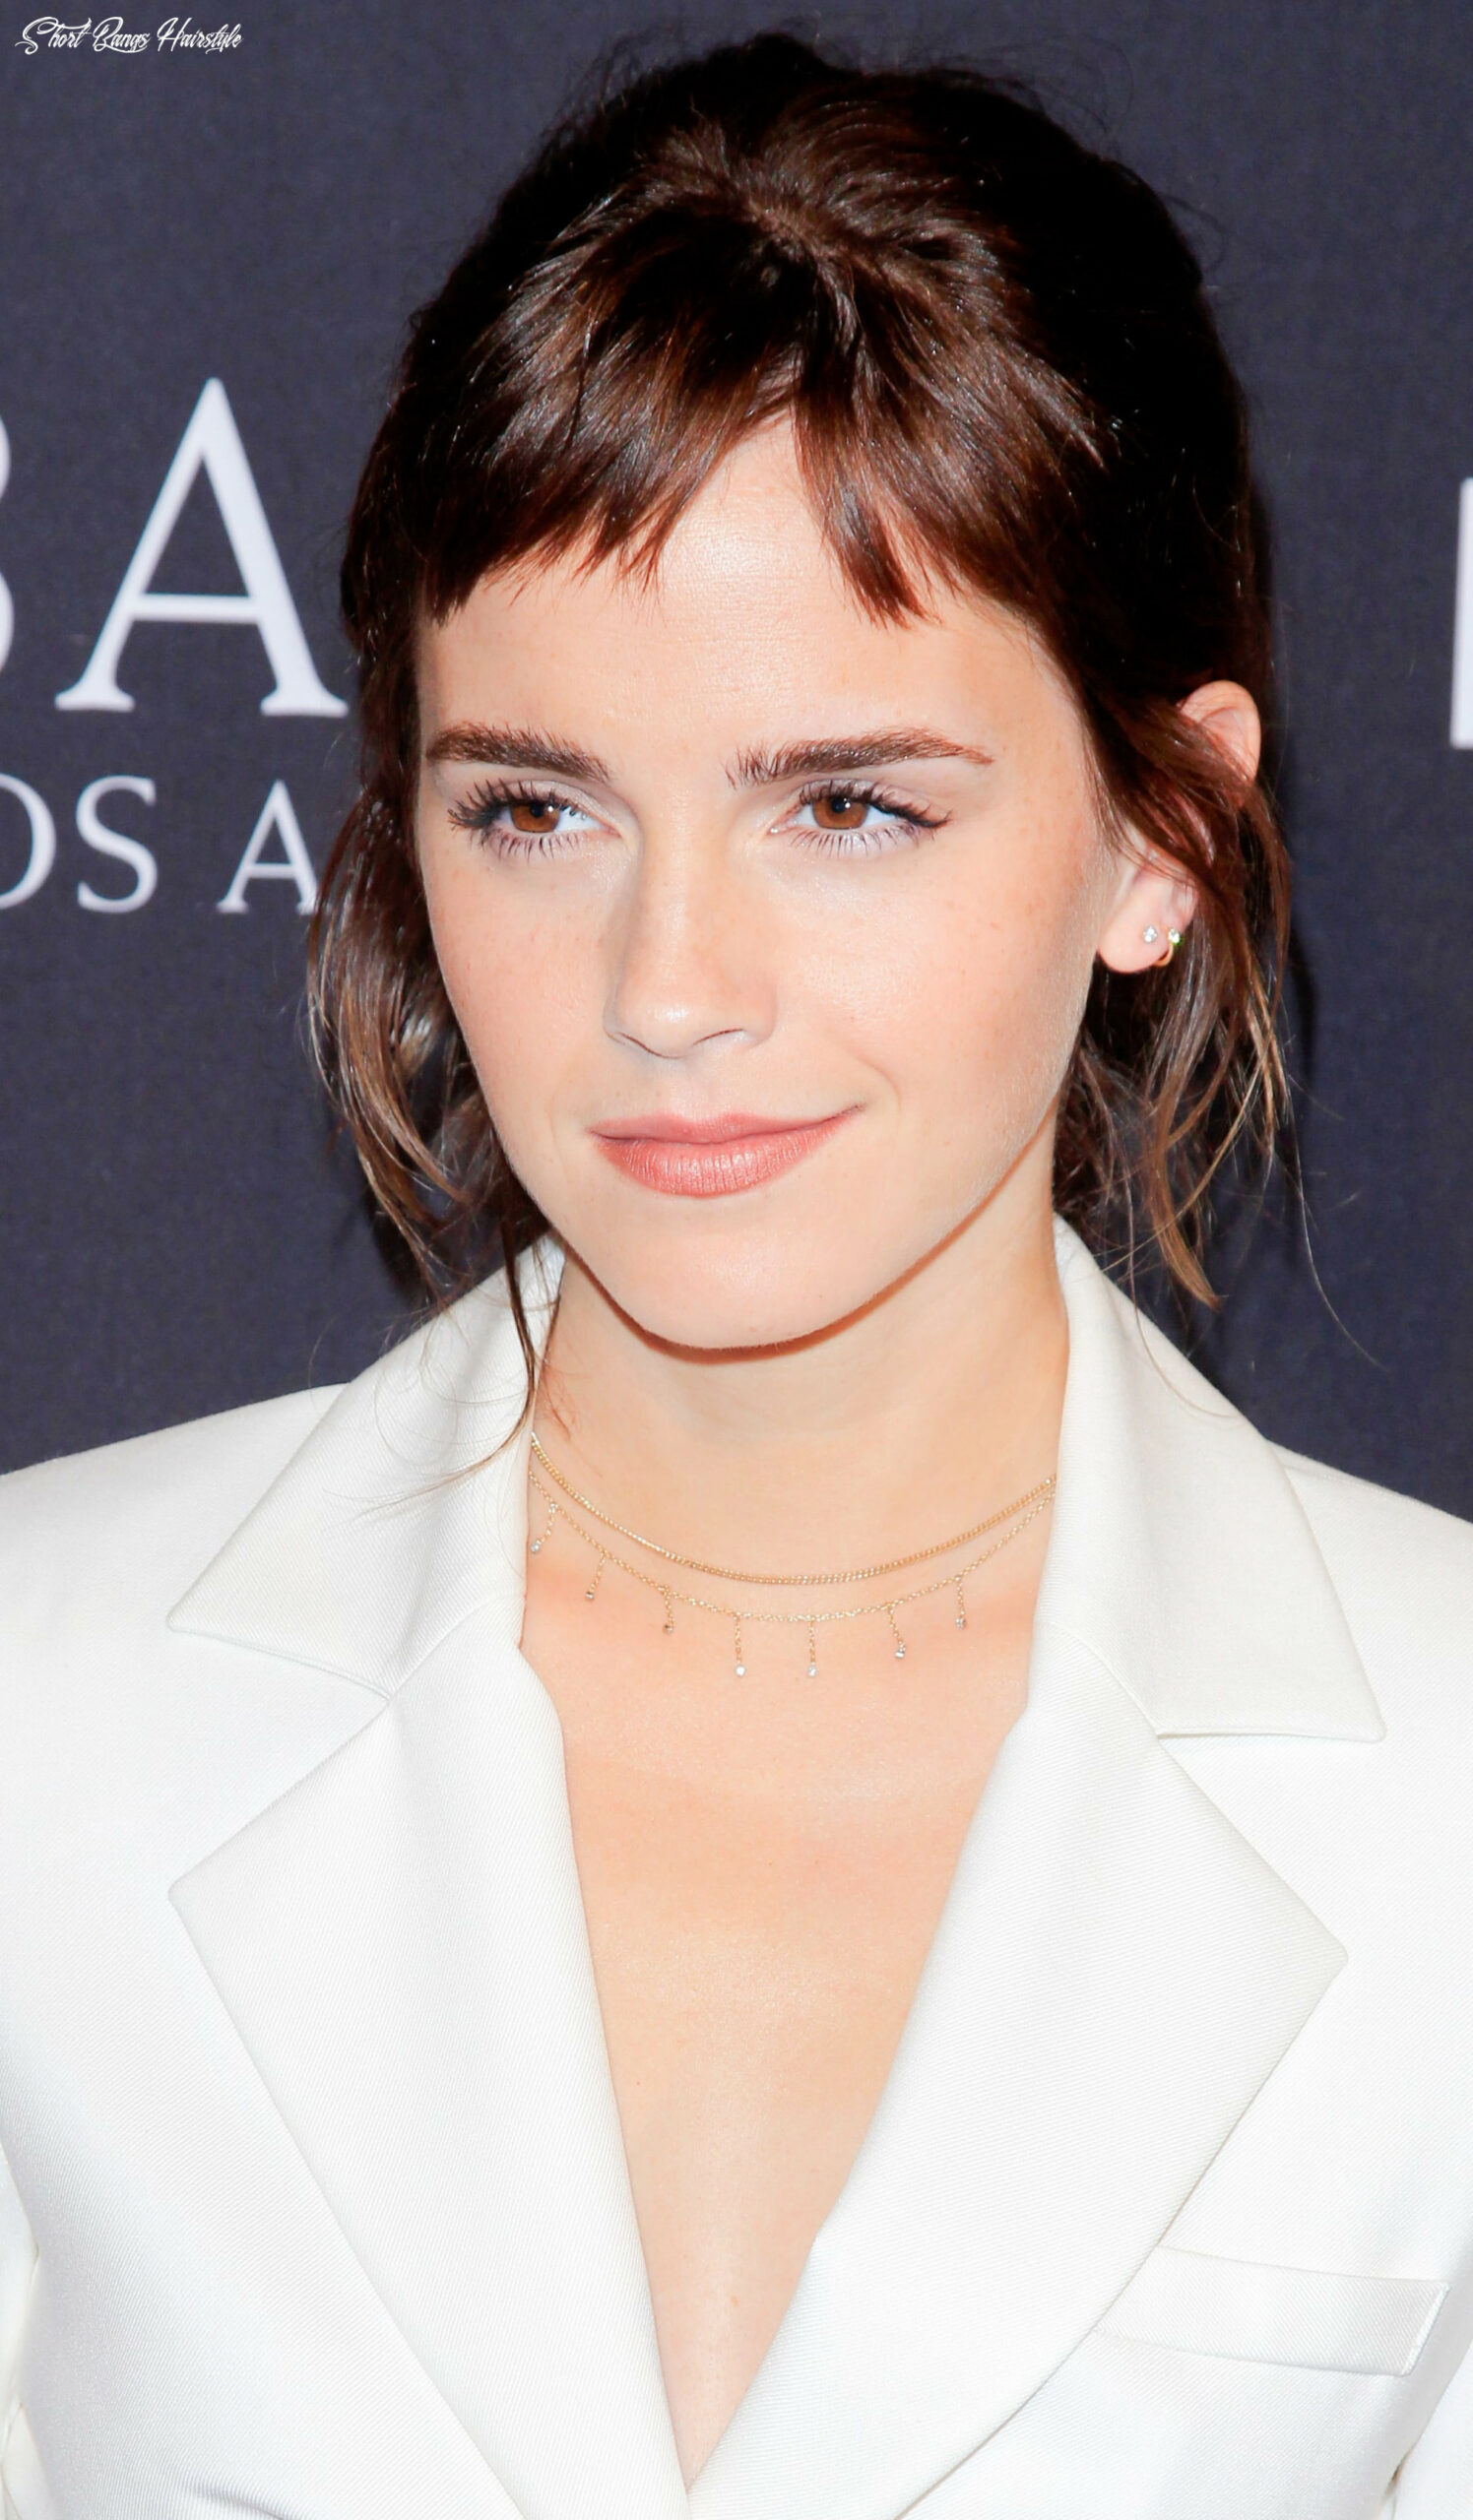 9 types of trendy bangs for young women | haircut inspiration short bangs hairstyle